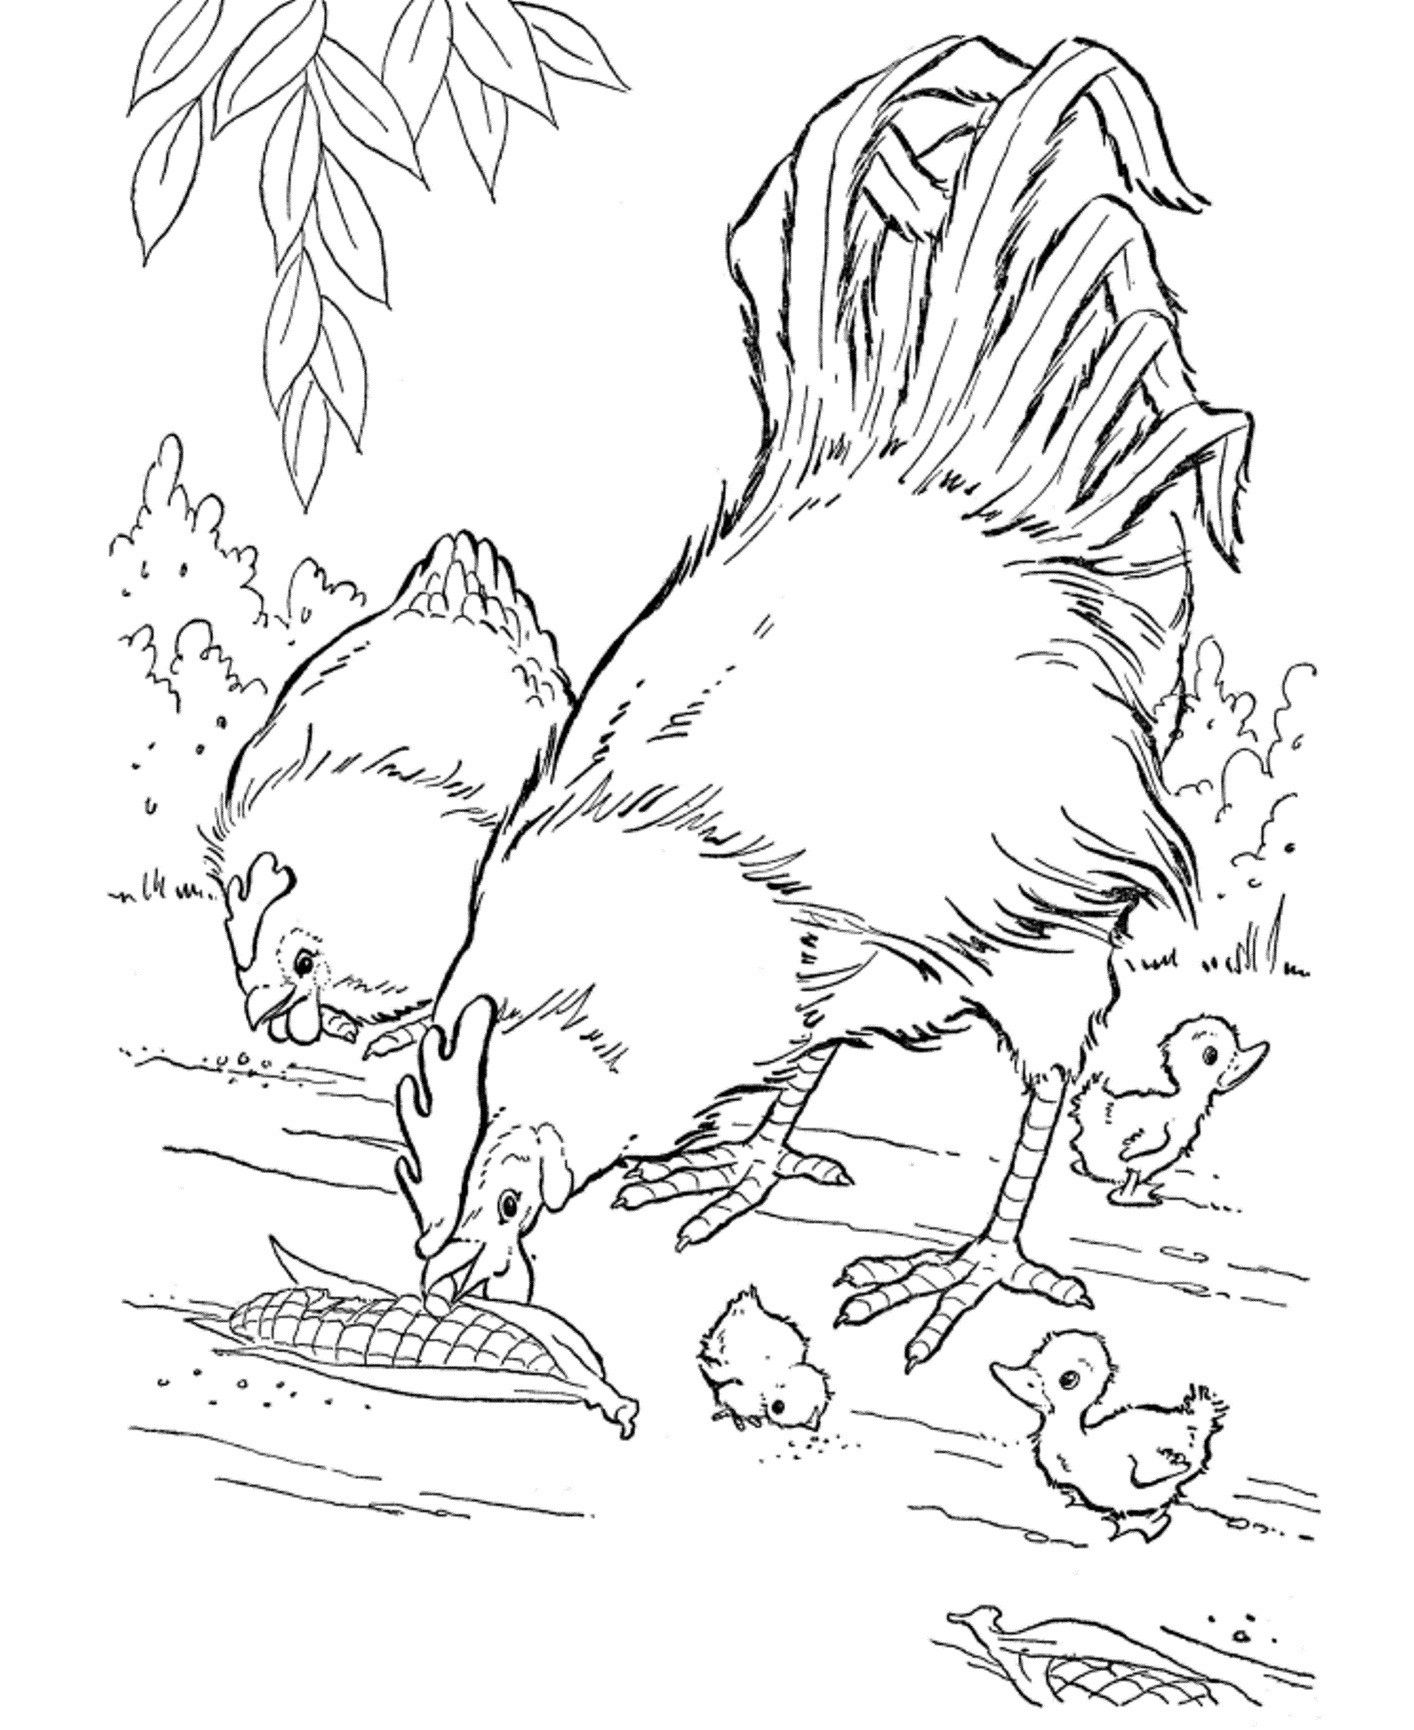 Kids Farm Coloring Pages Coloring Pages For Kids Farm Animals At Getdrawings Free For